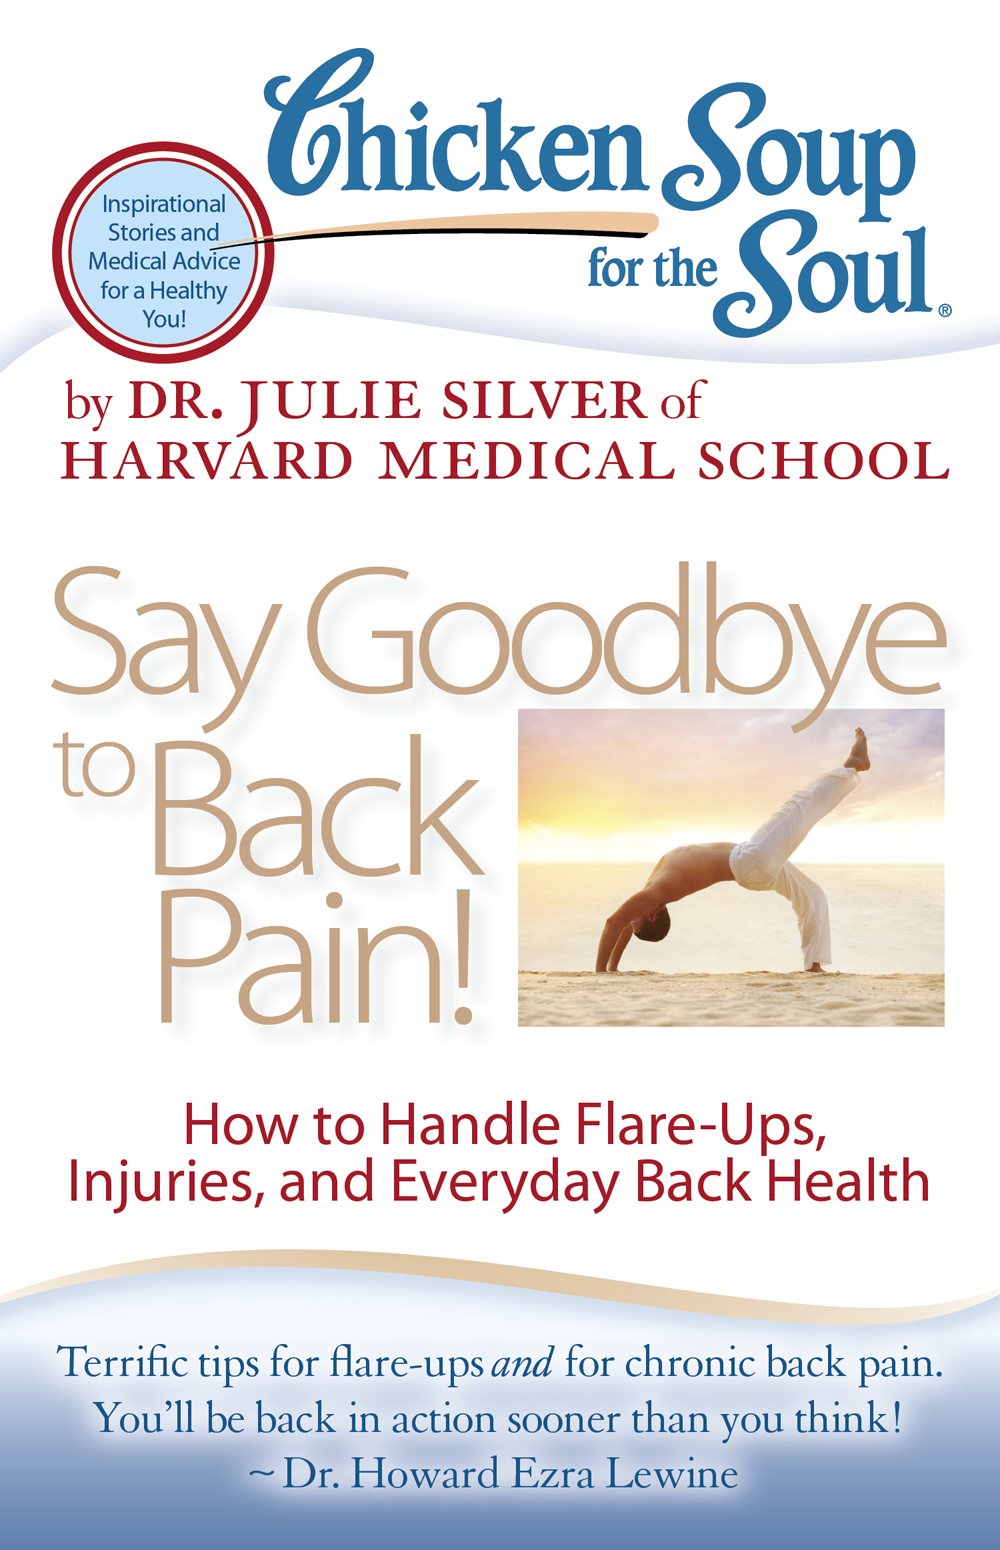 Chicken Soup For the Soul-Say Goodbye to Back Pain book cover